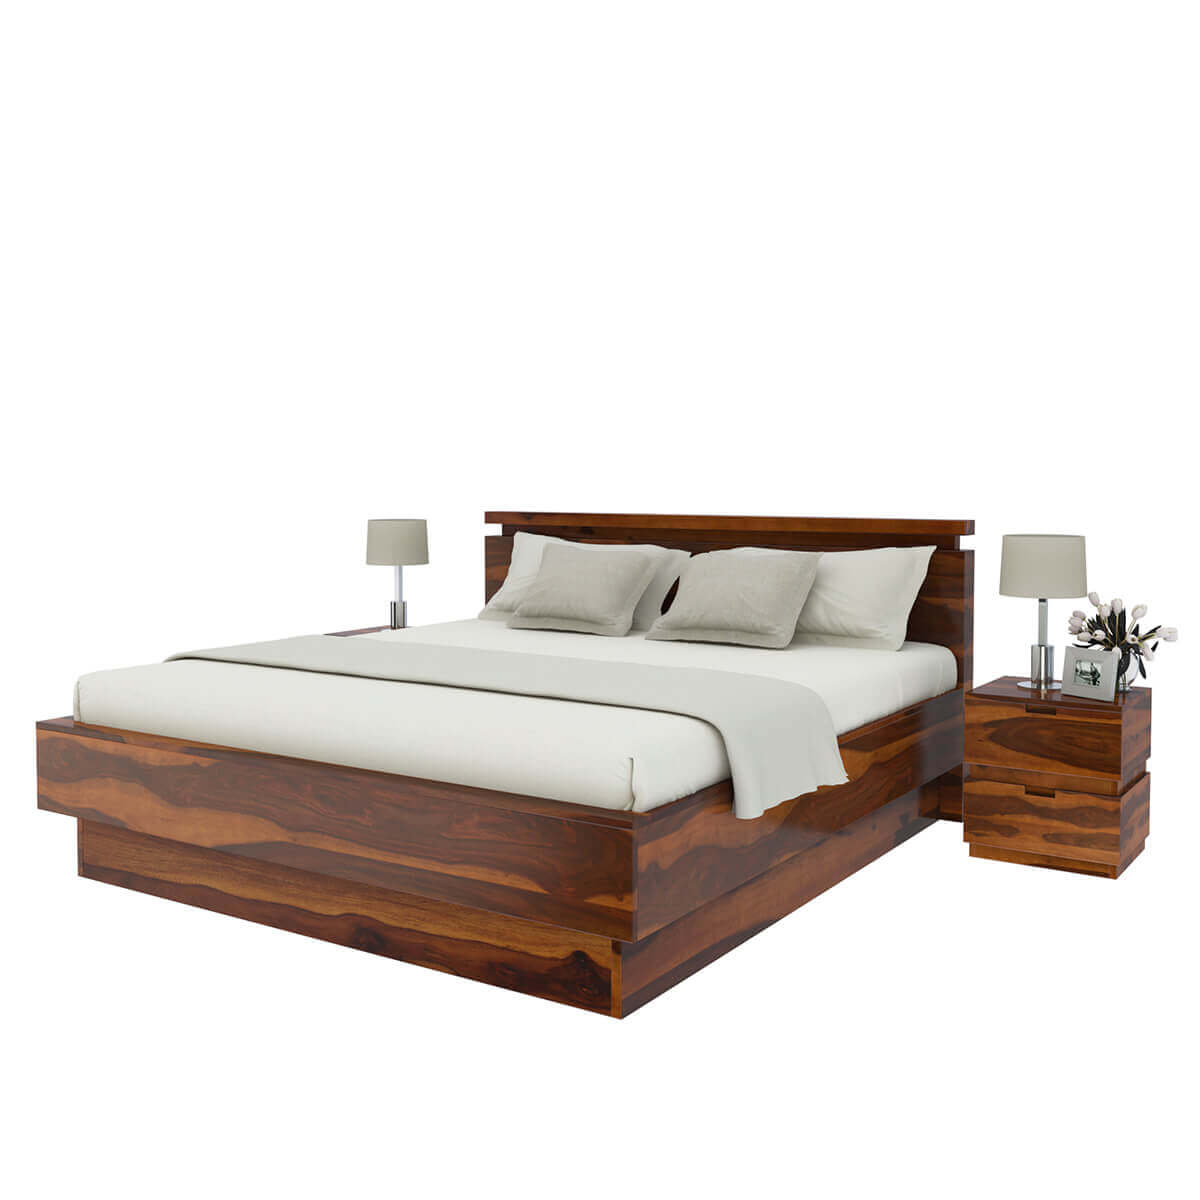 Modern simplicity solid wood queen size platform bed Wood platform bed